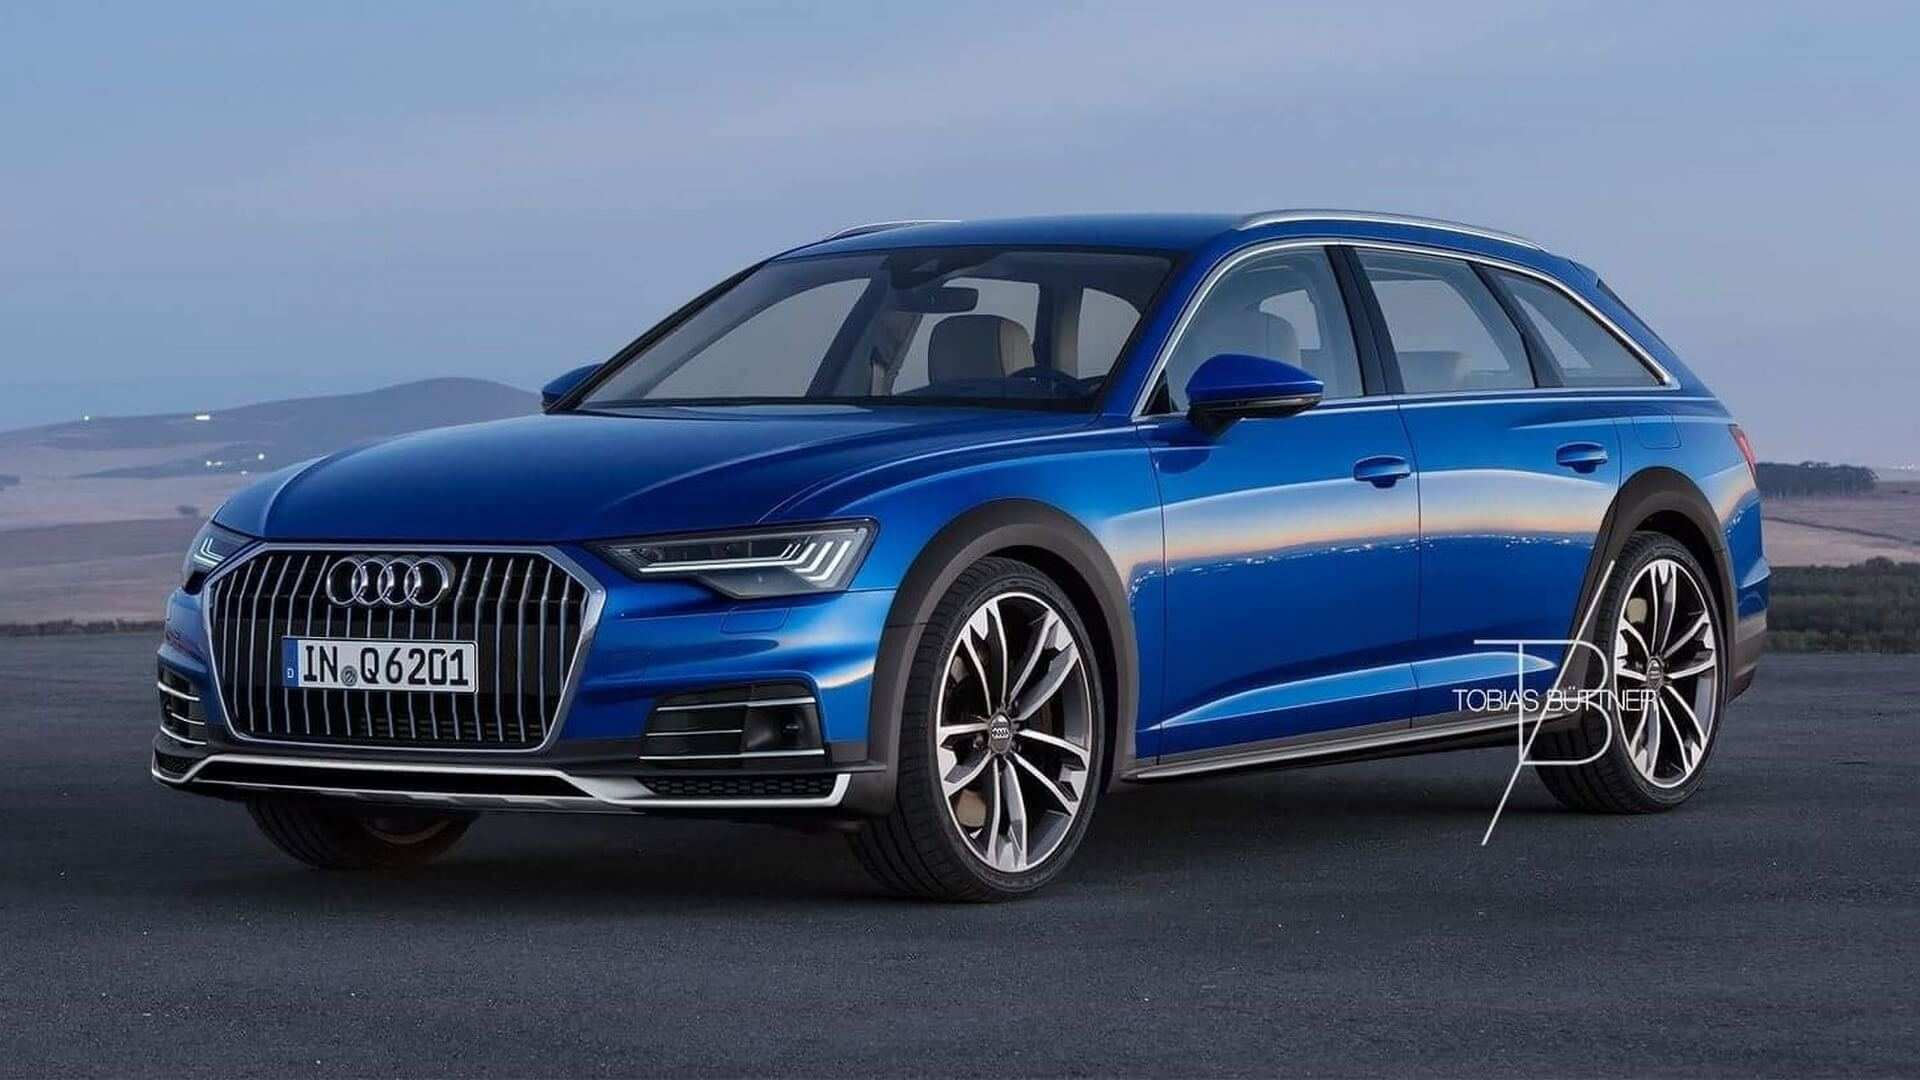 51 The Best 2020 Audi A6 Allroad Usa Picture